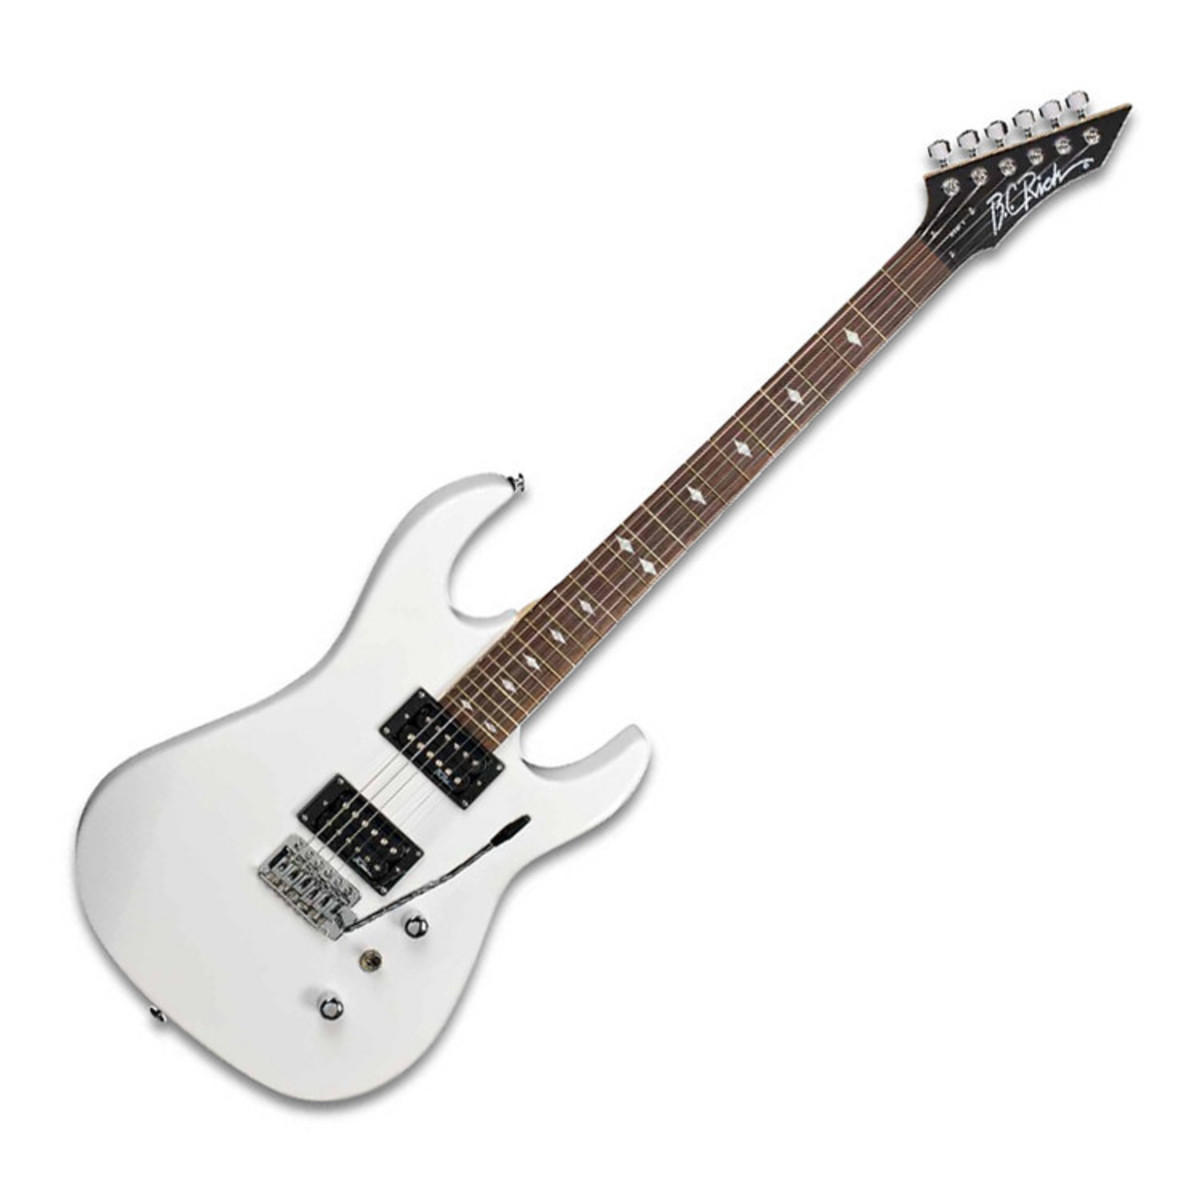 disc bc rich asm one electric guitar white with multi fx. Black Bedroom Furniture Sets. Home Design Ideas